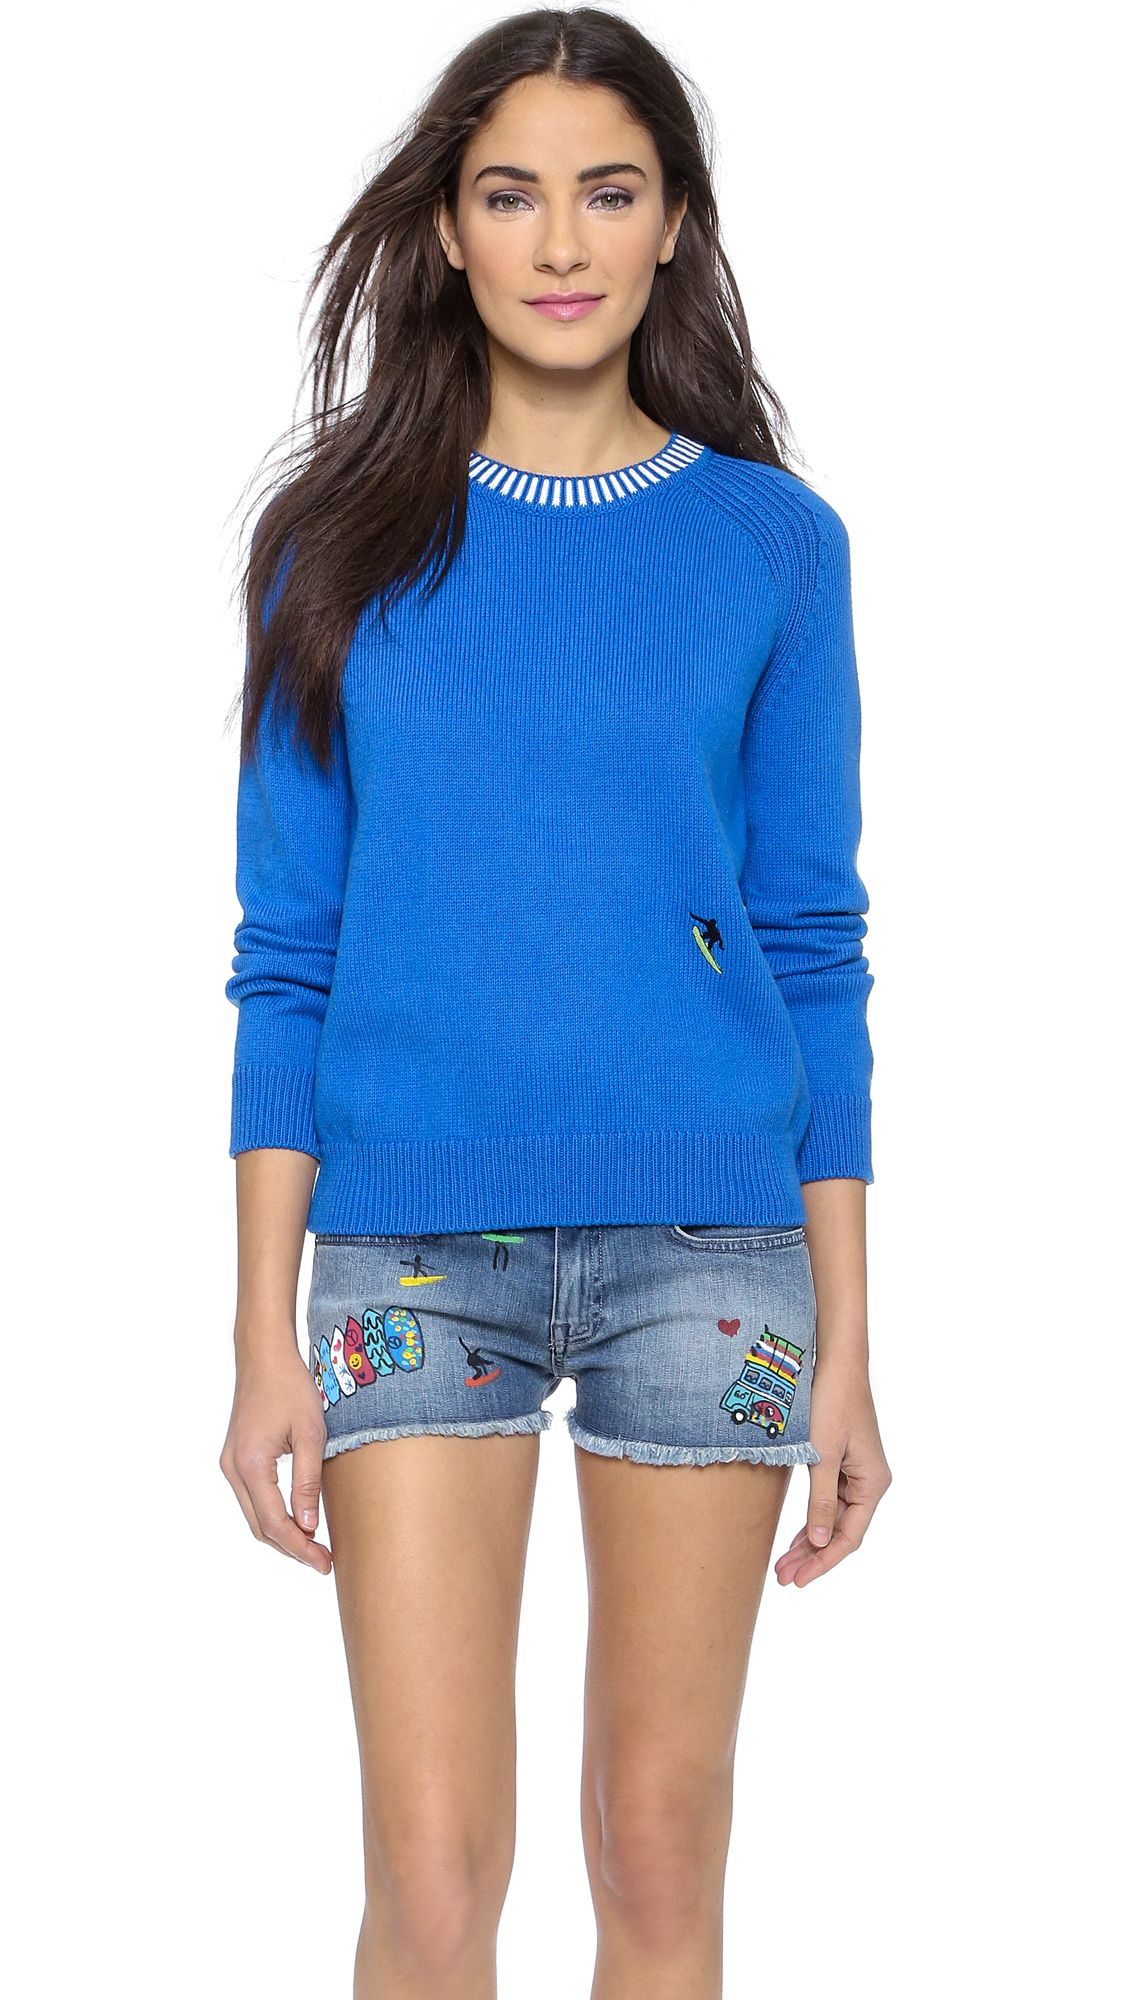 C x Mira Mikati Blue Sweater with Surfer